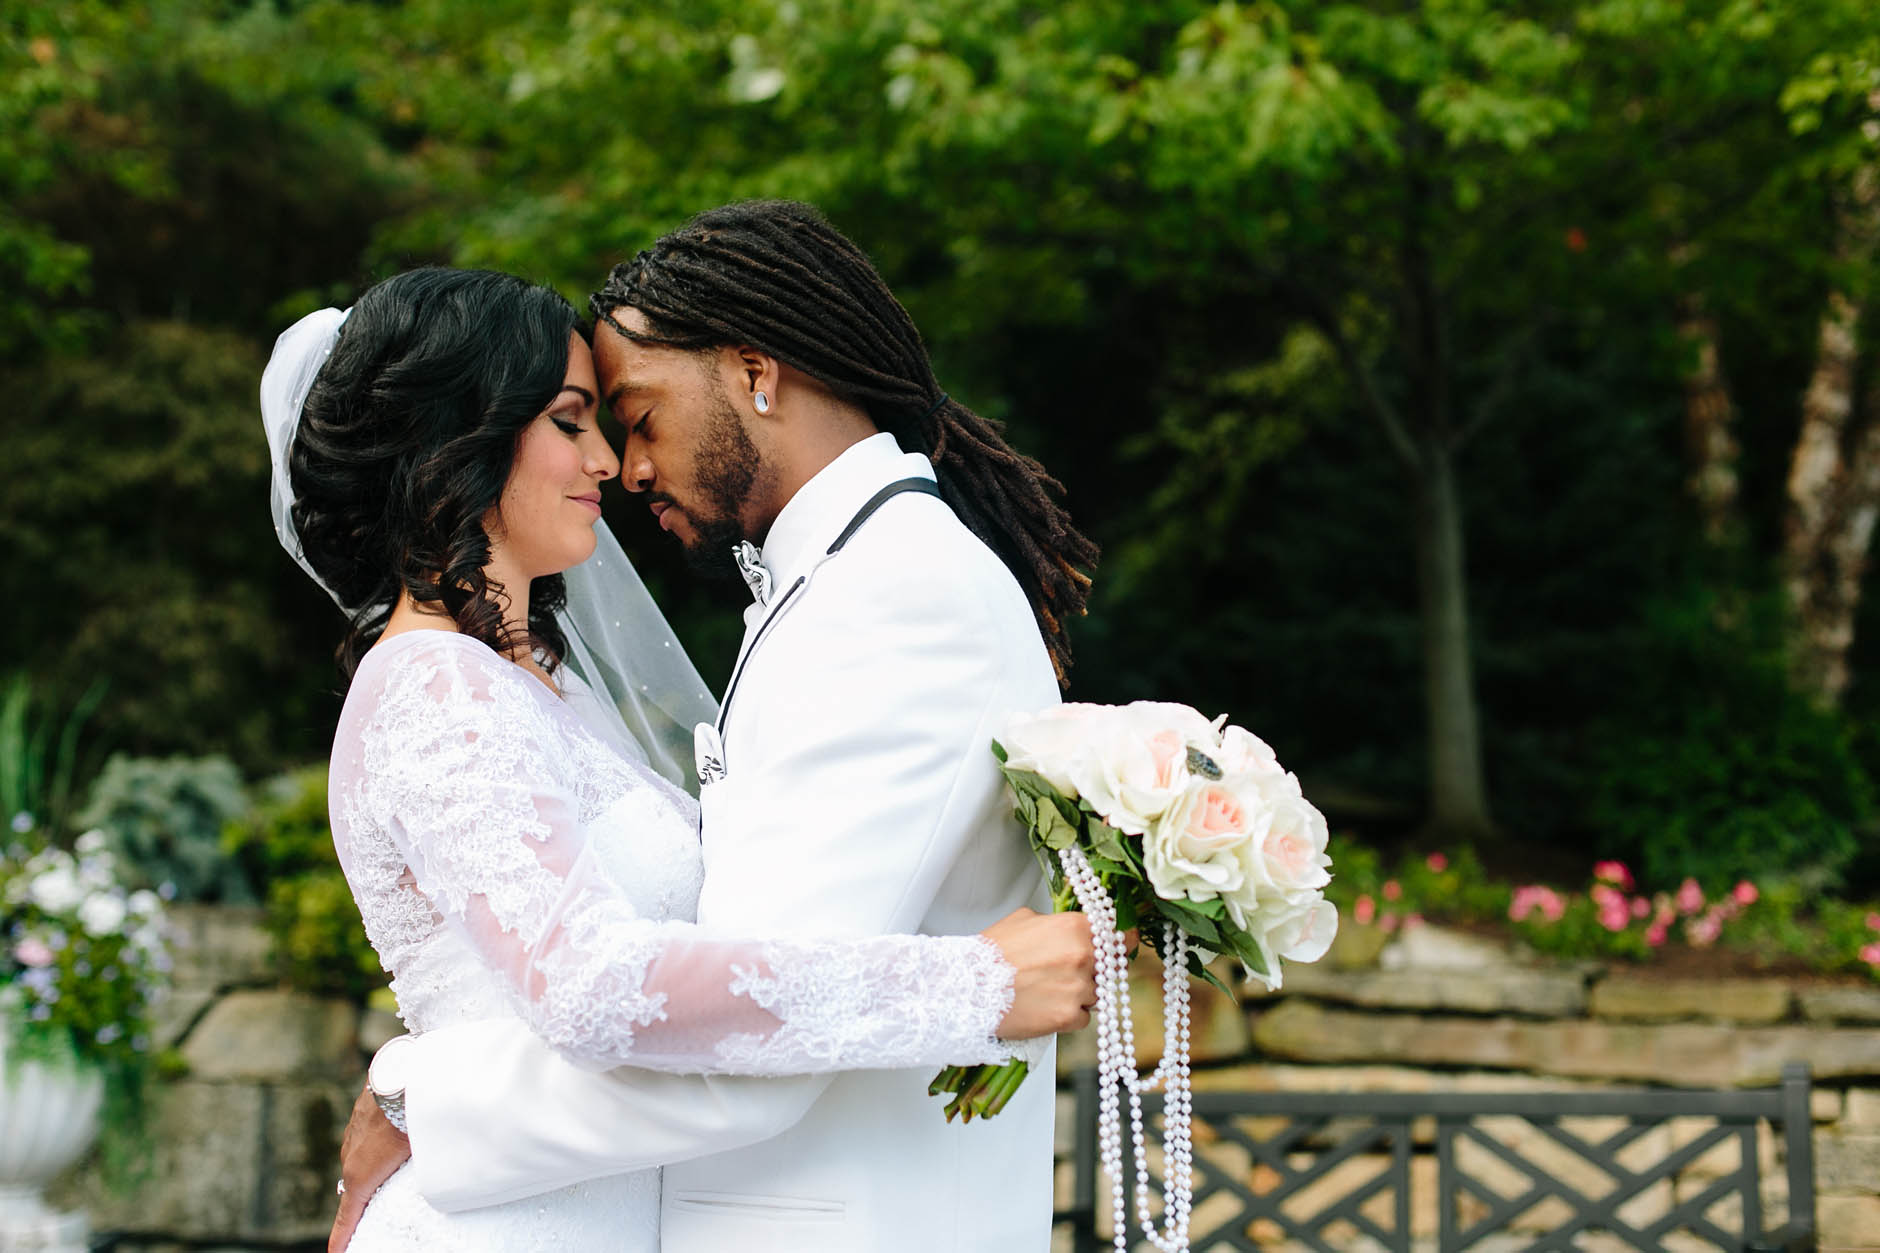 A fall wedding at Tom's Country Place with LaRay & Justin.